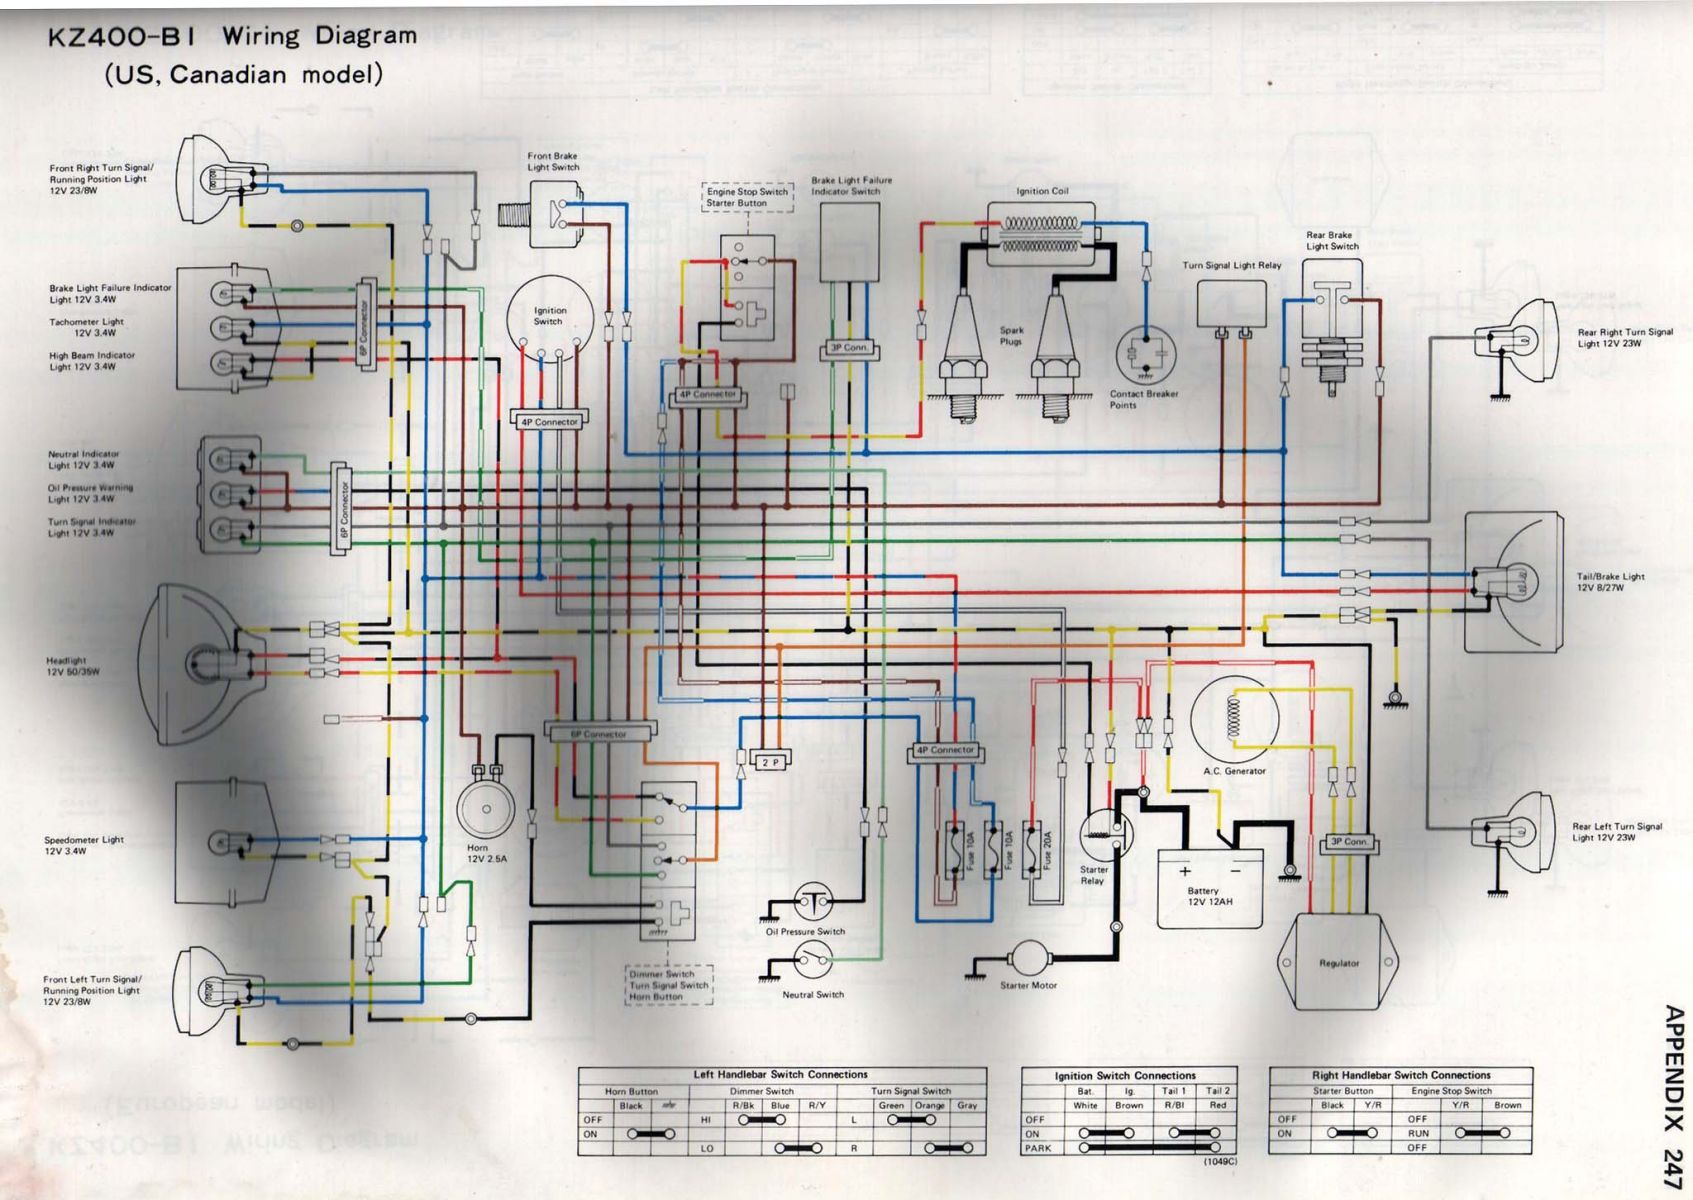 wiring diagram turn signal relay 2004 ford explorer stereo leds won 39t work kzrider forum kz z1 and z